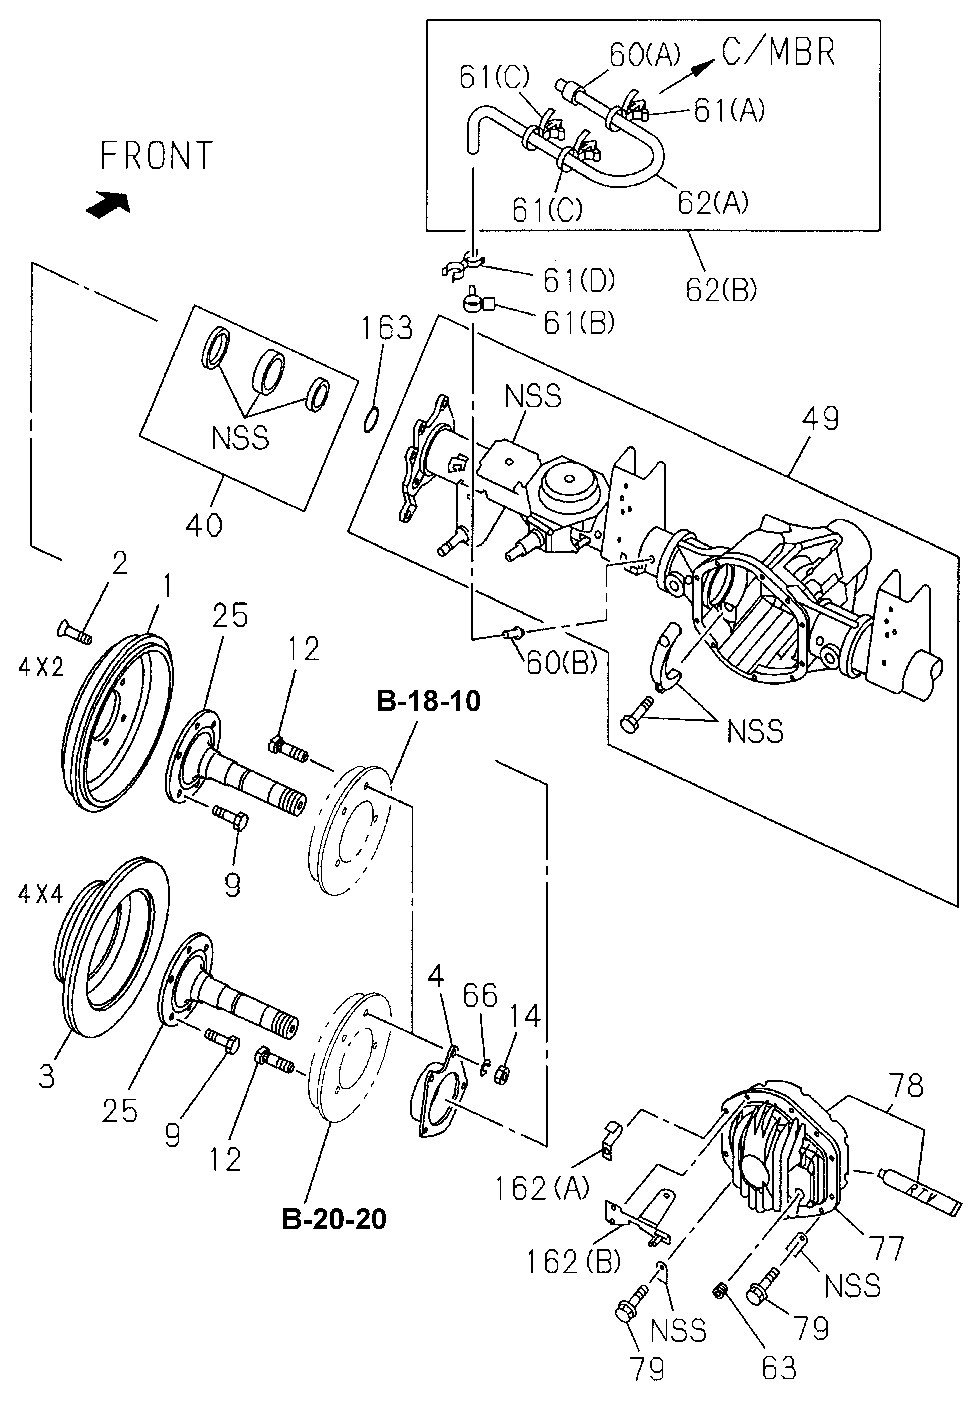 2-90265-710-0 - SHAFT, RR. AXLE